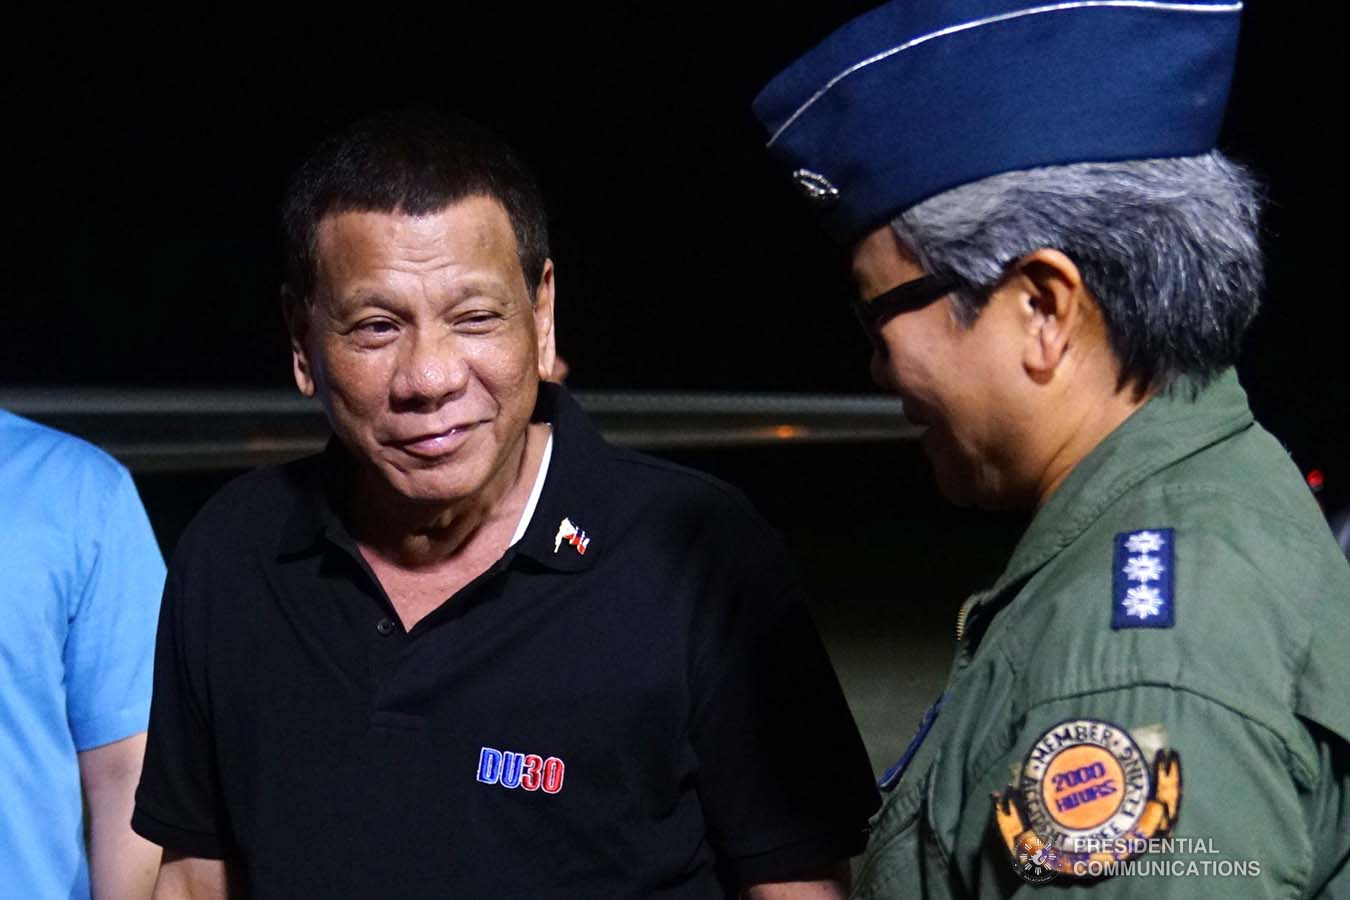 President Rodrigo Roa Duterte shares a light moment with an officer from the Philippine Air Force before boarding a plane bound for the Kingdom of Thailand at the Tactical Operations Group 11 in Davao City on November 1, 2019. JOEY DALUMPINES/PRESIDENTIAL PHOTO